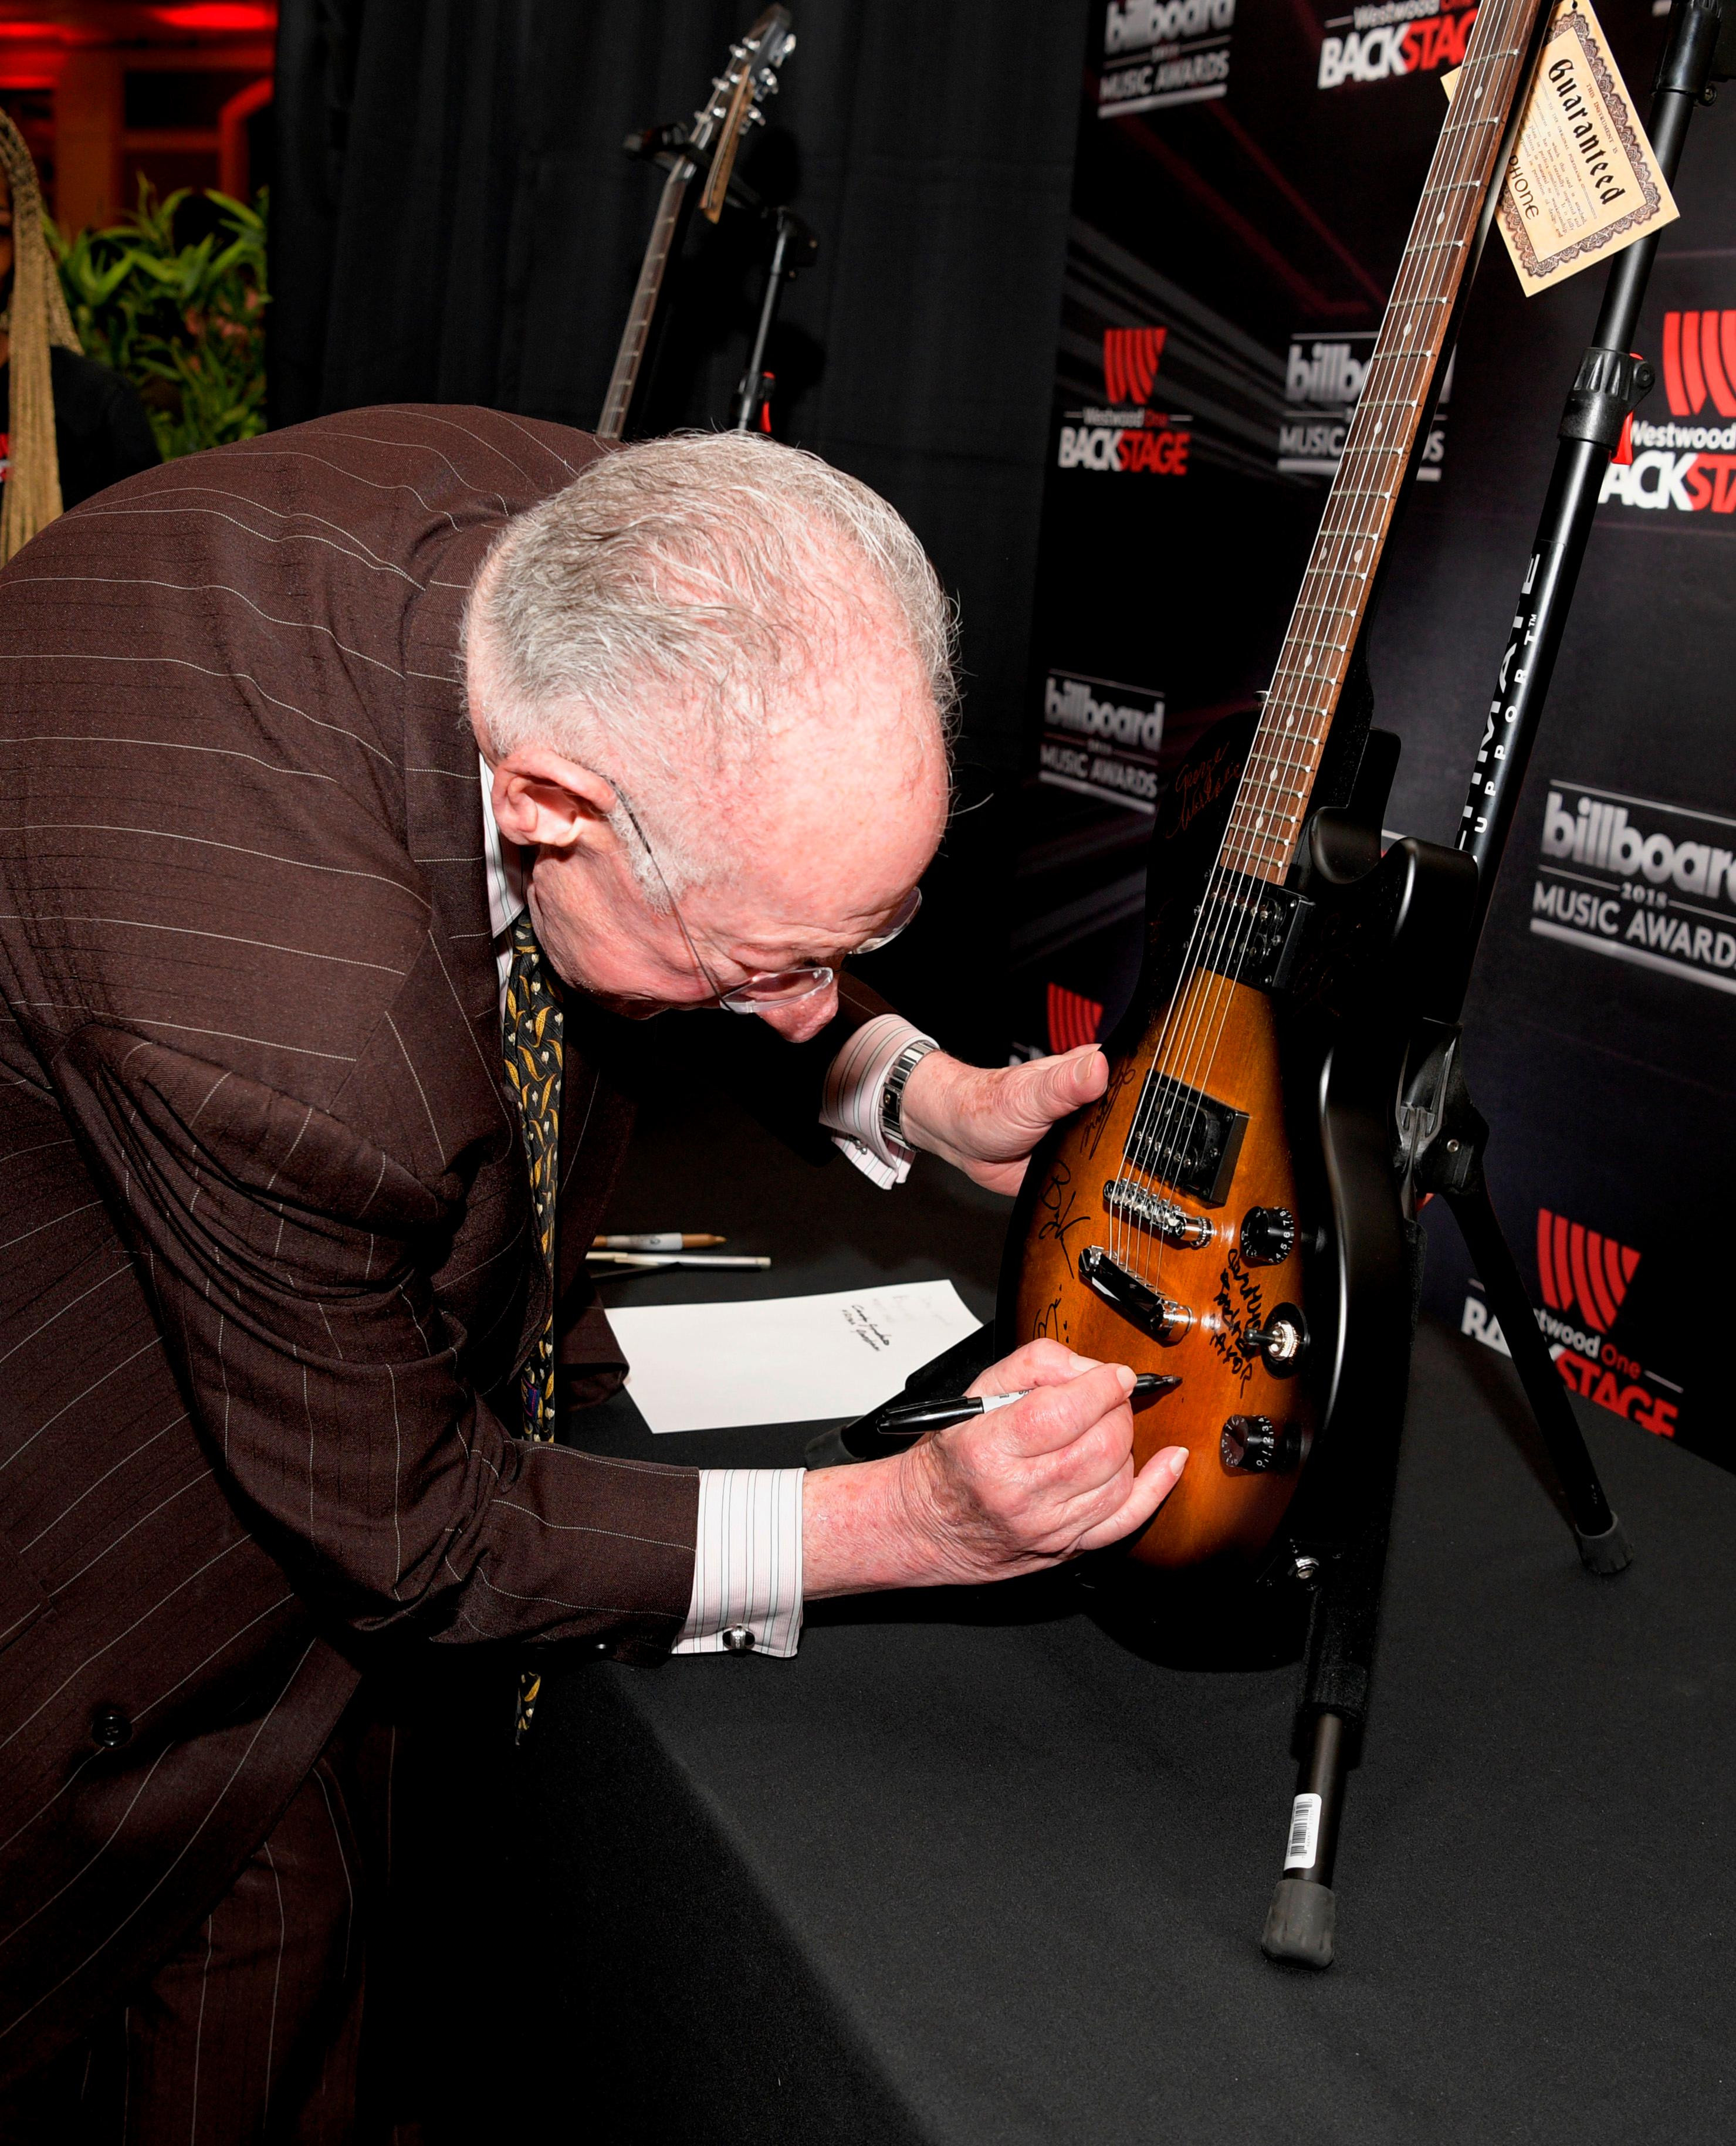 Former Las Vegas Mayor Oscar B. Goodman autographs guitars at the Billboard Music Awards Radio Row with representatives from across the country at the MGM Grand Hotel & Casino on the Las Vegas Strip. Saturday, May 19, 2018. CREDIT: Glenn Pinkerton/Las Vegas News Bureau